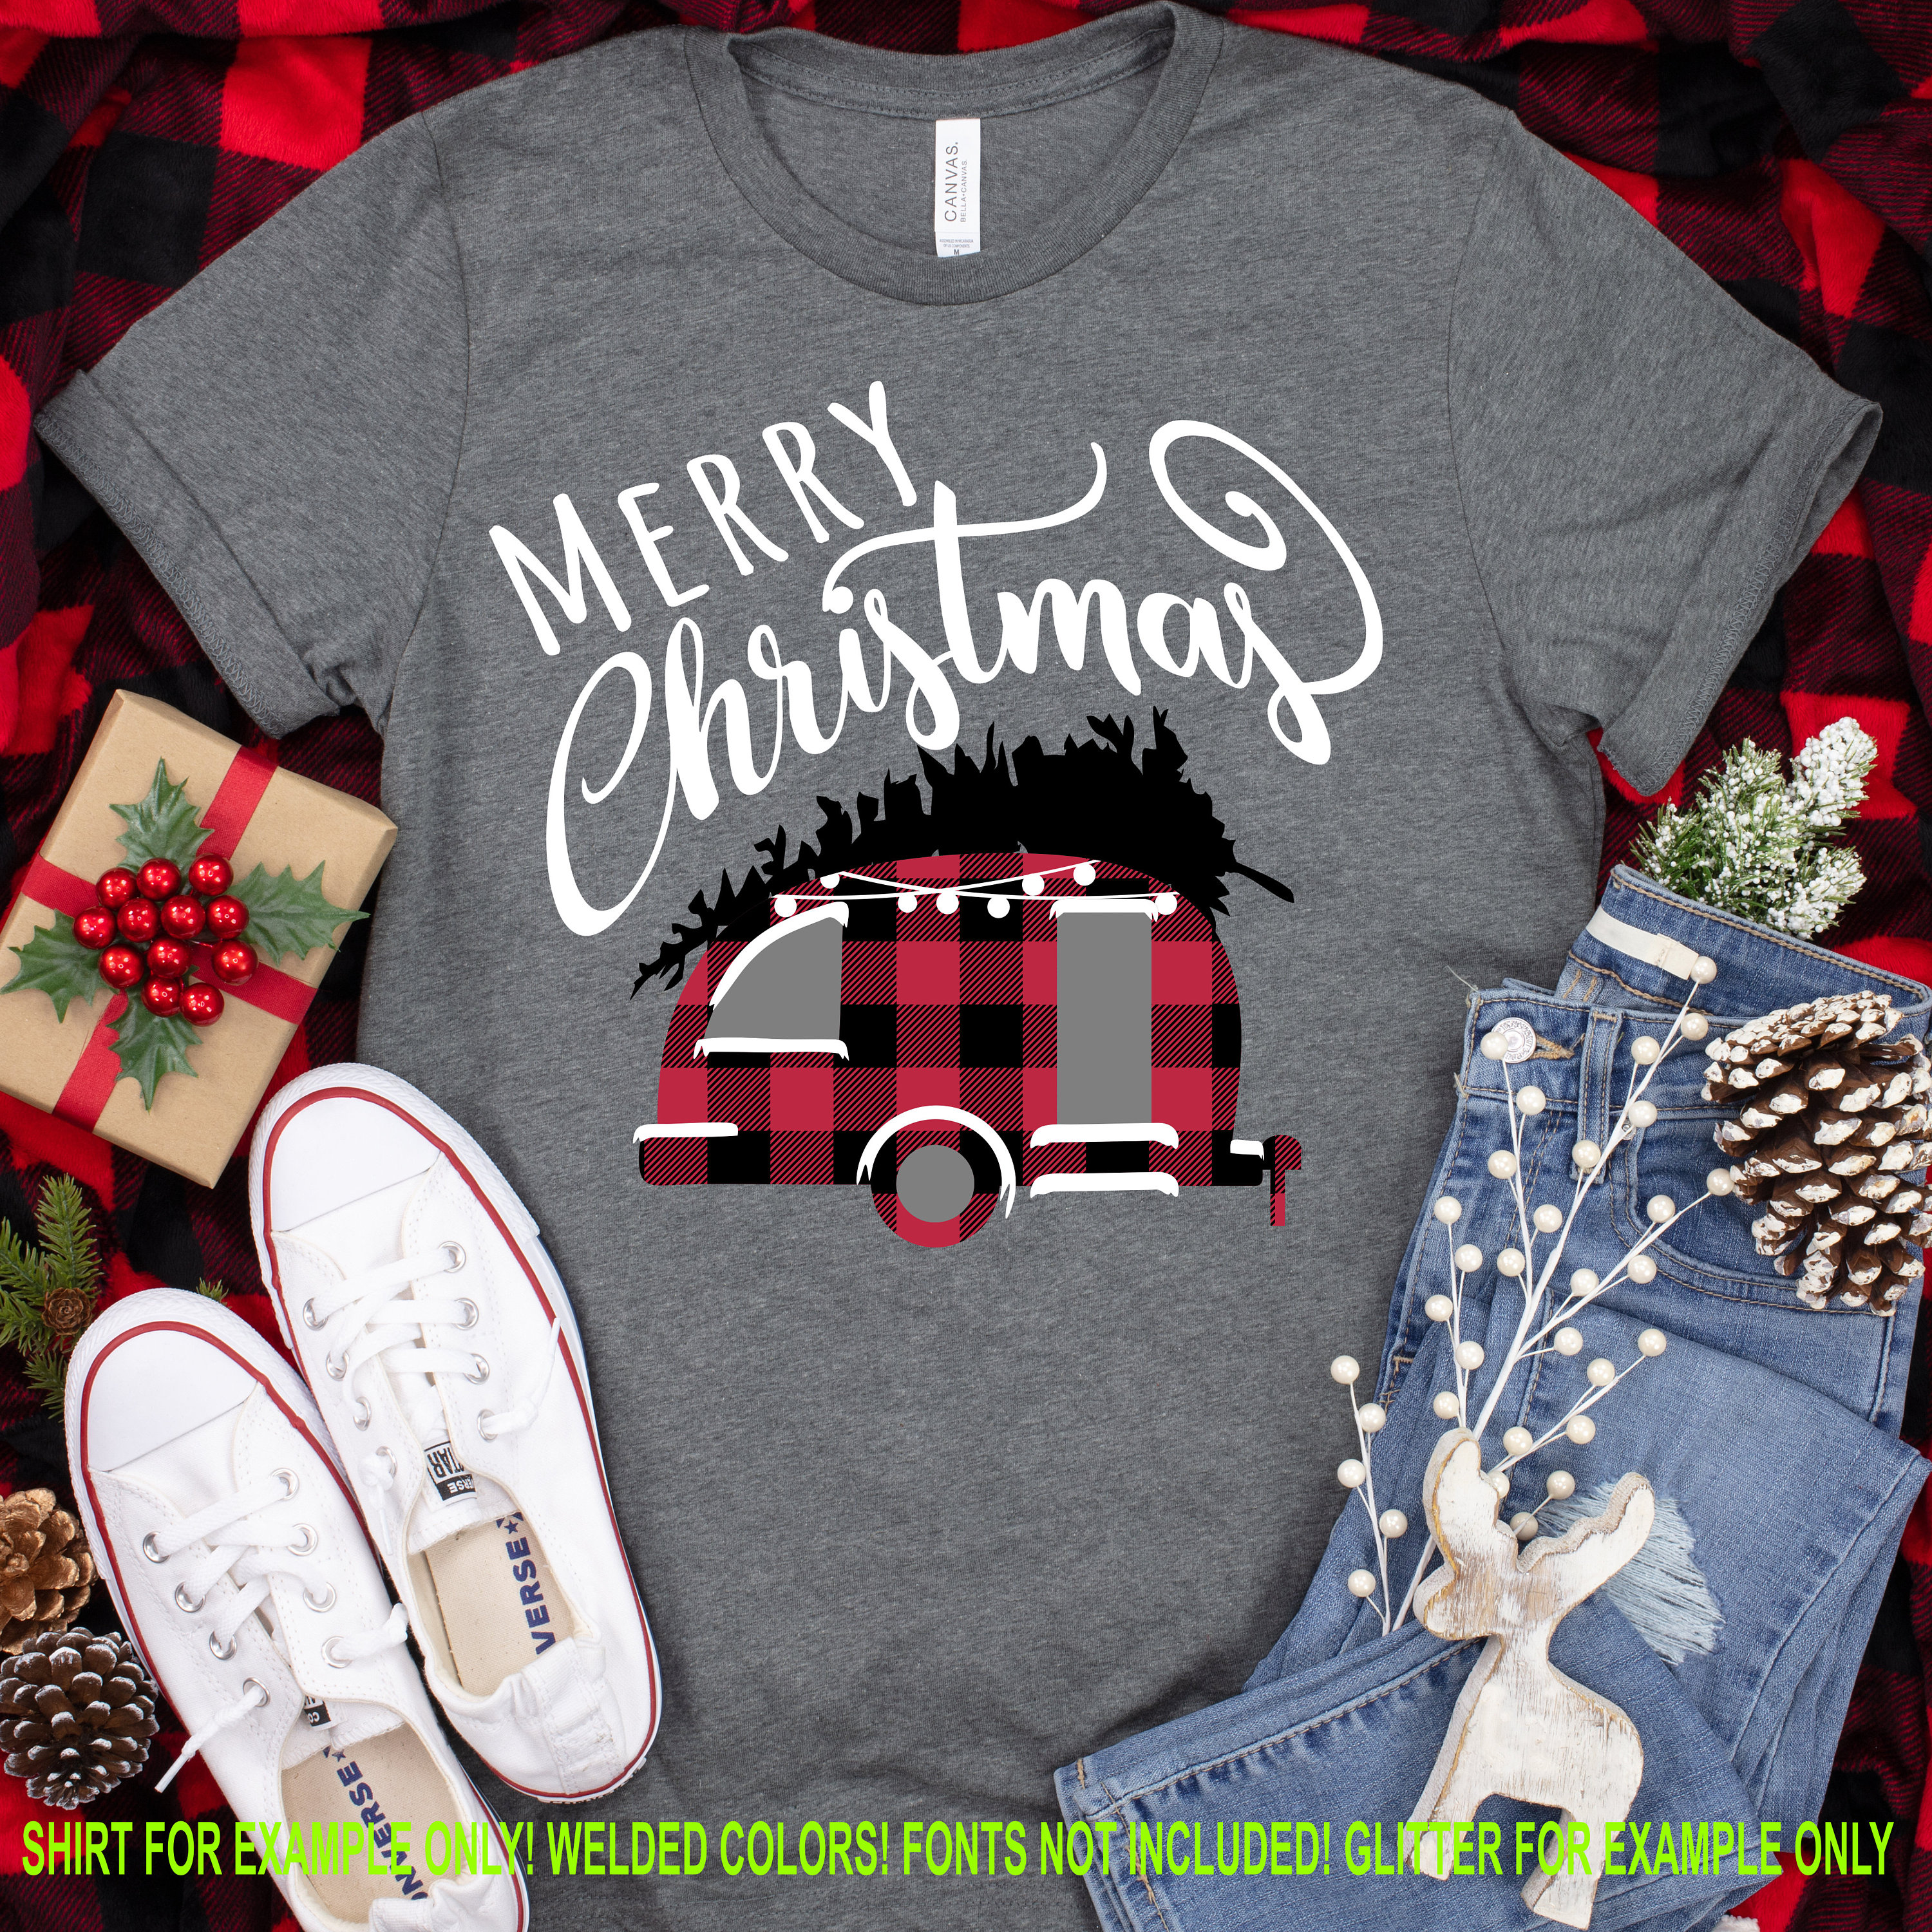 Merry-christmas-camper-svg-christmas-camper-svg-camper-svg-camping-svg-buffalo-plaid-svg-christmas-svg-designs-christmas-cut-files-5fa093b7